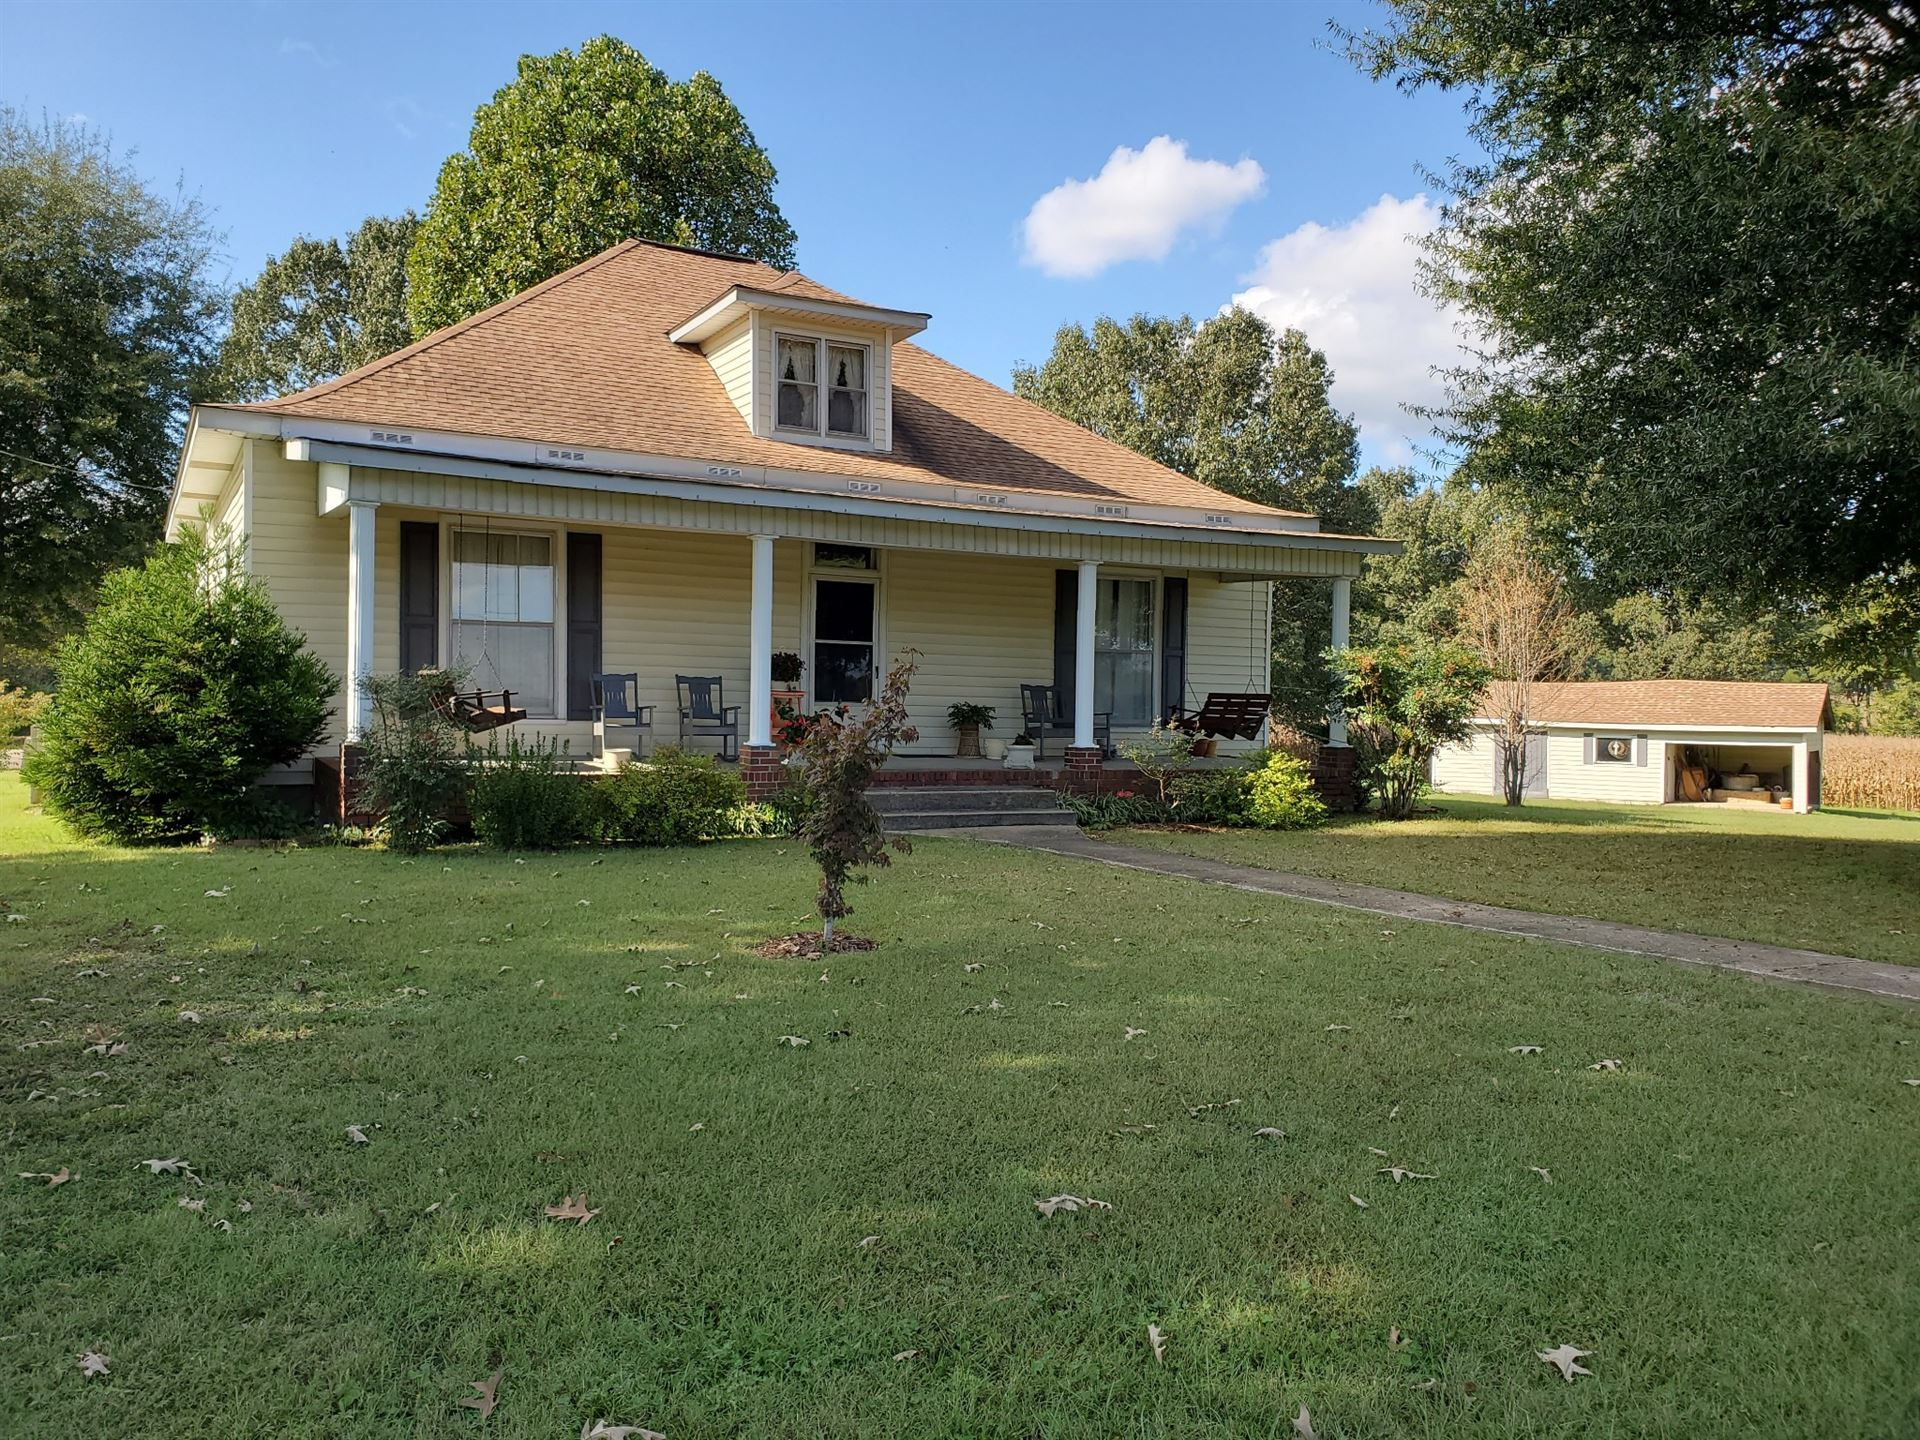 7704 Old State Route 1, New Johnsonville, TN 37134 - MLS#: 2298649